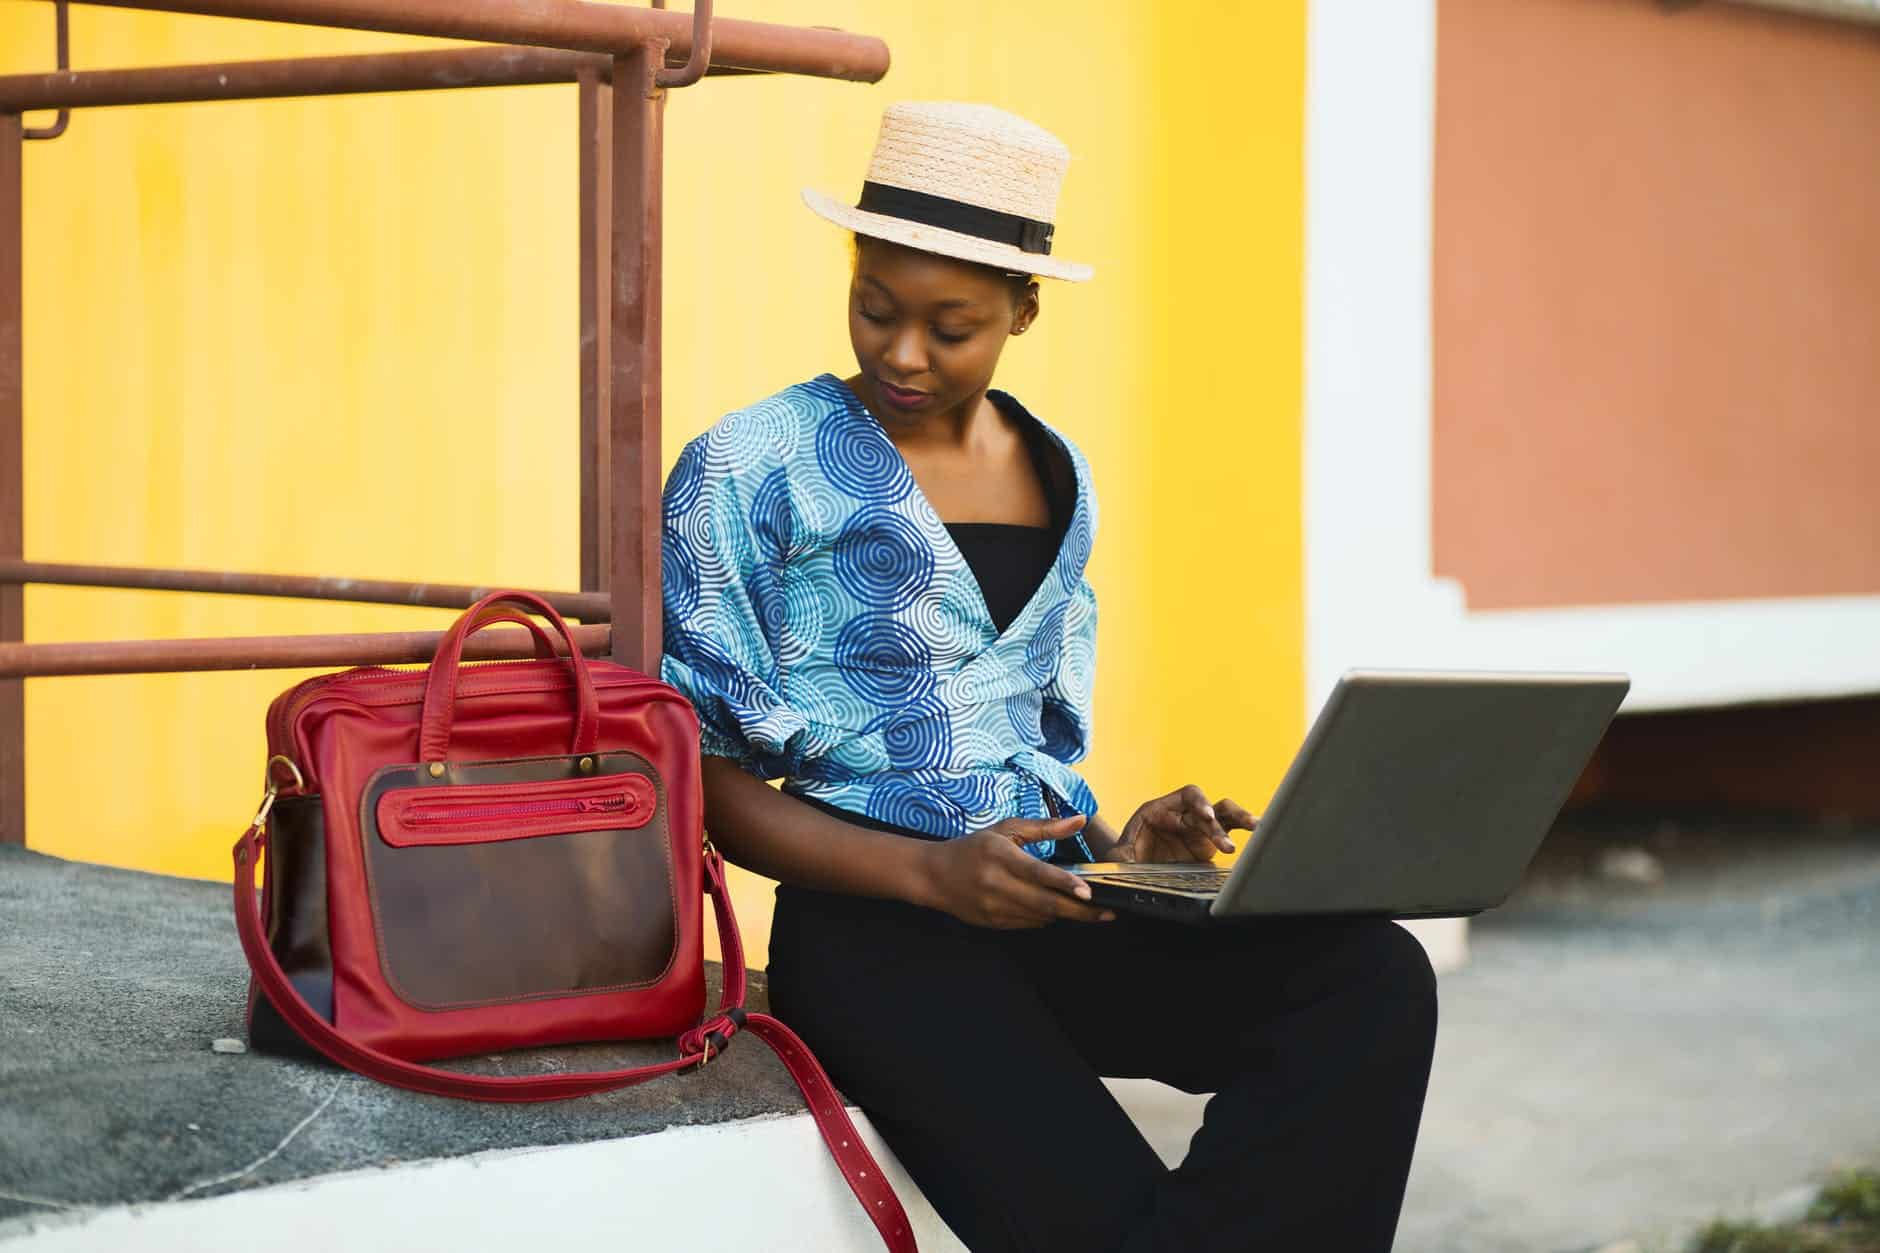 Laptop Bags for Women Reviewed